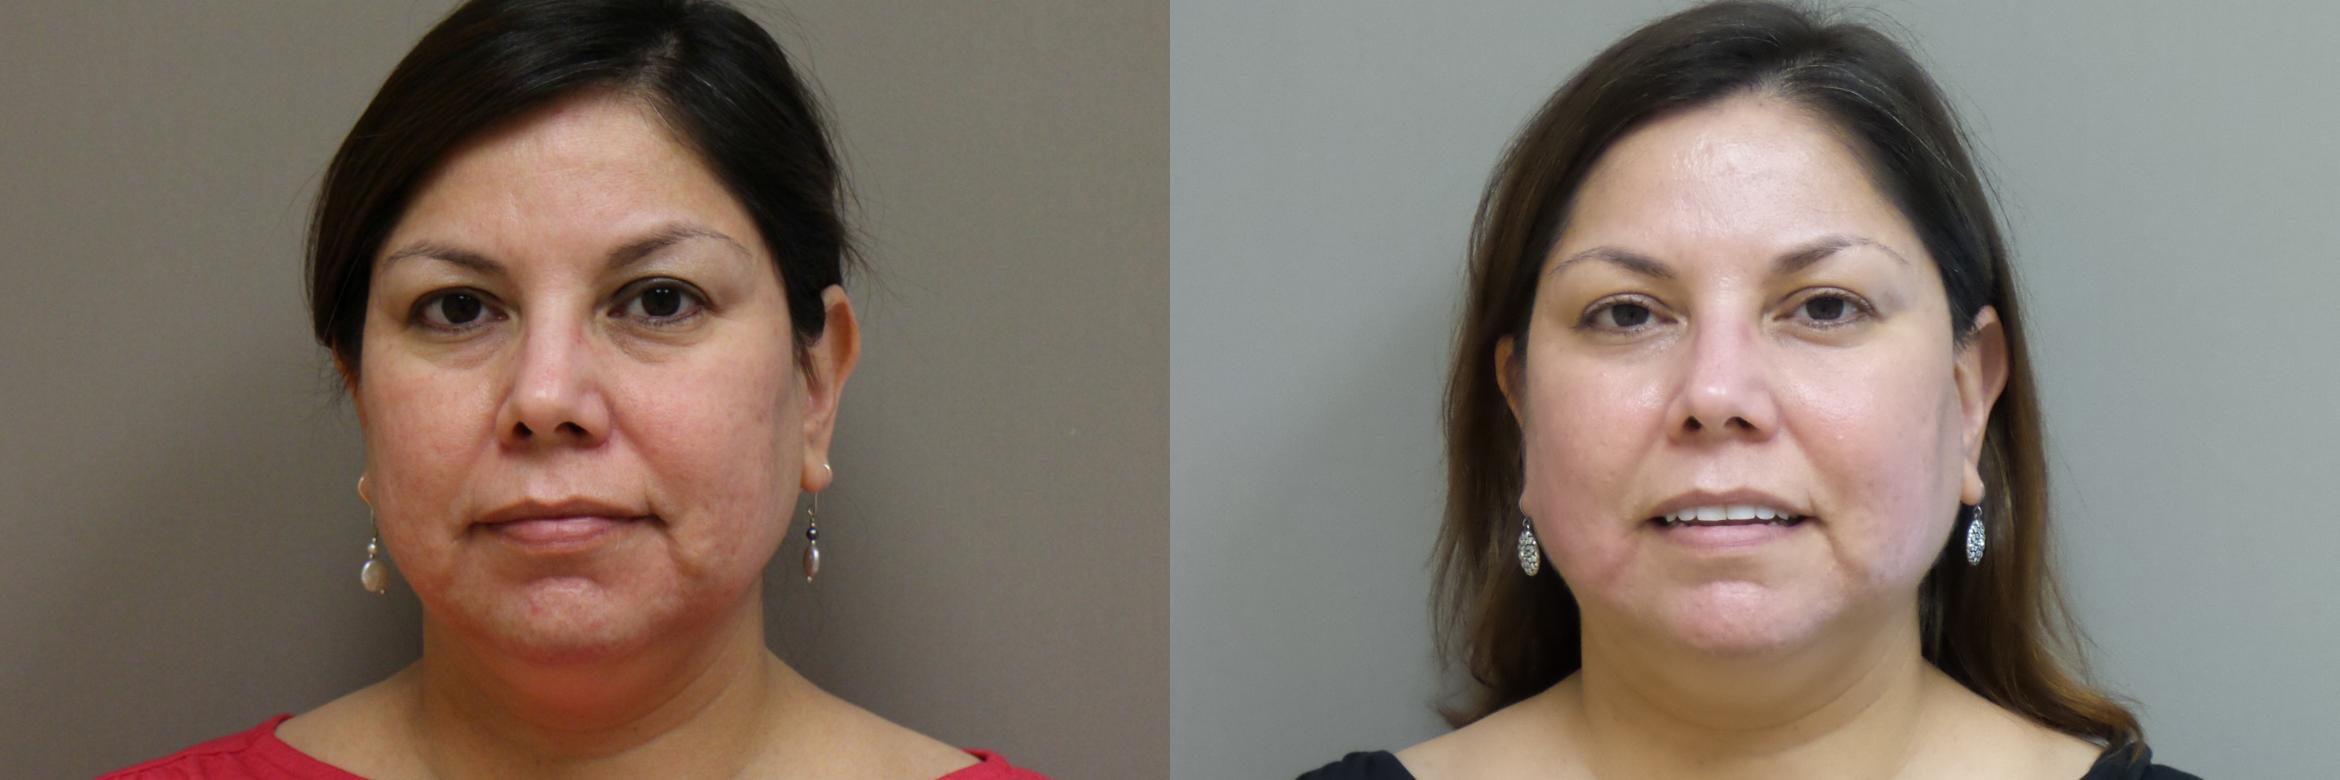 Lasers & Lights Case 175 Before & After View #1 | Webster, TX | Houston Plastic and Reconstructive Surgery